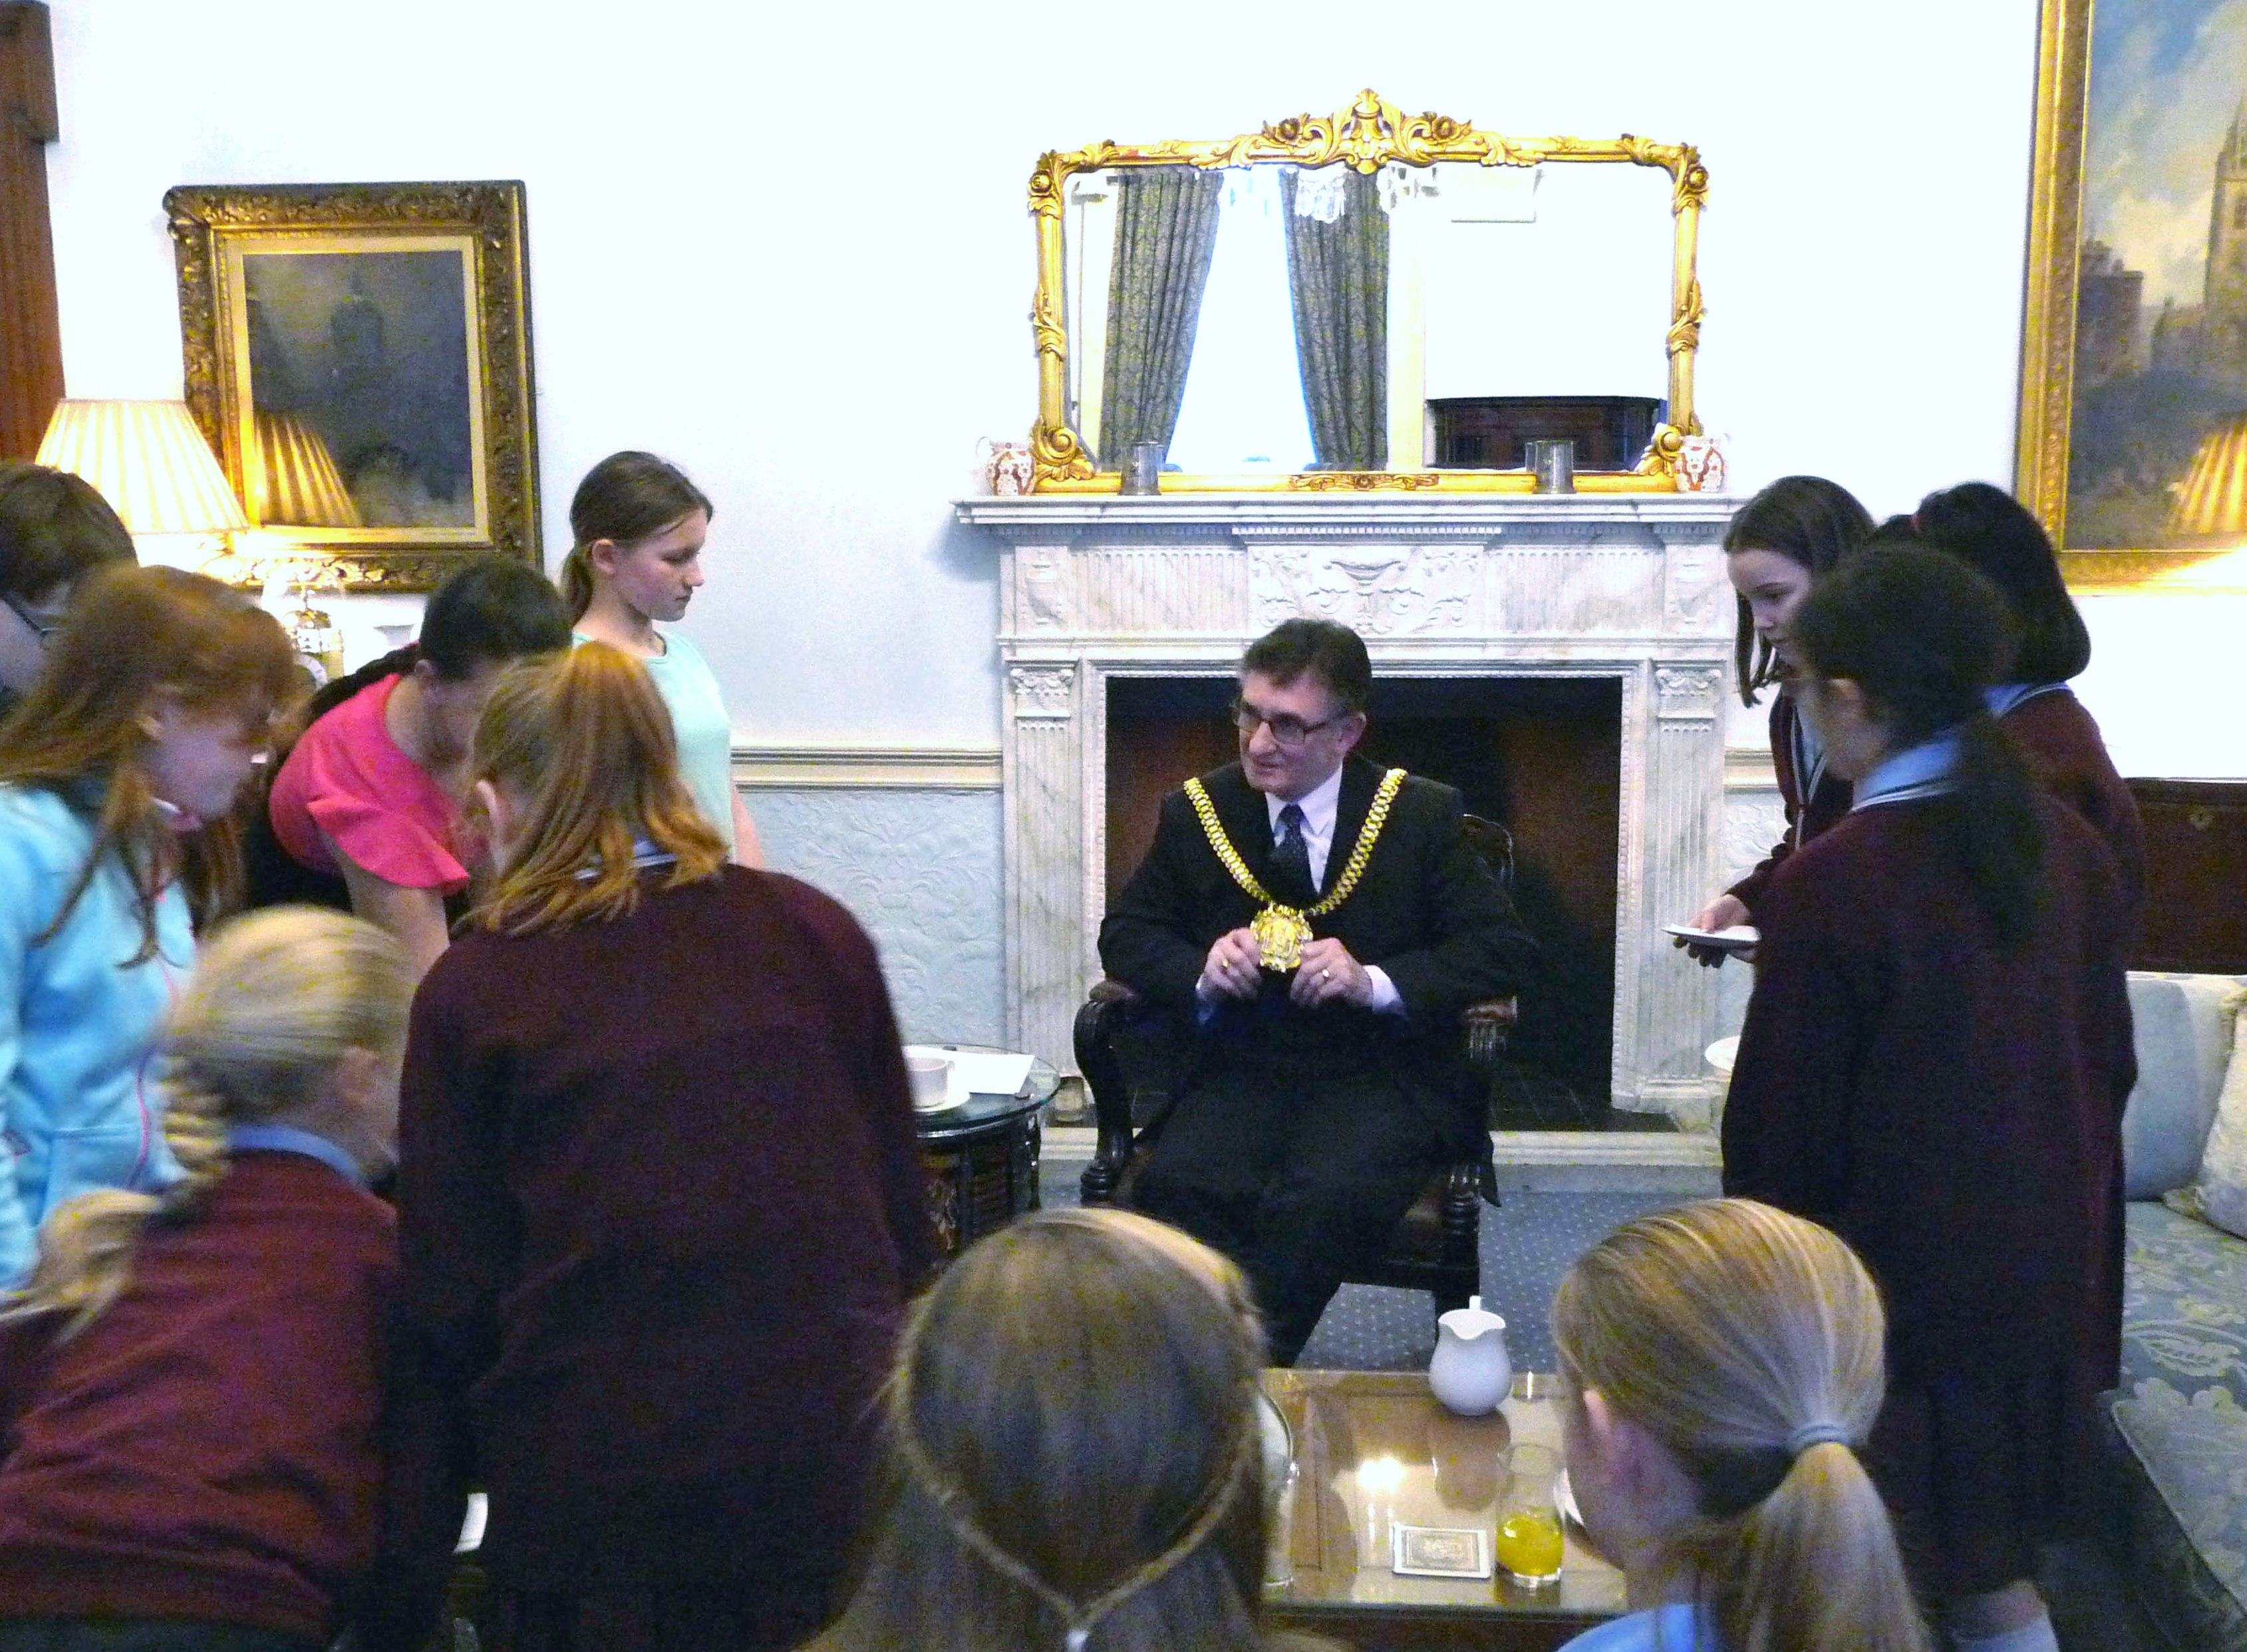 Liverpool Lord Mayor Tony Conception showing members of Merseyside YE his chain of office, January 2016